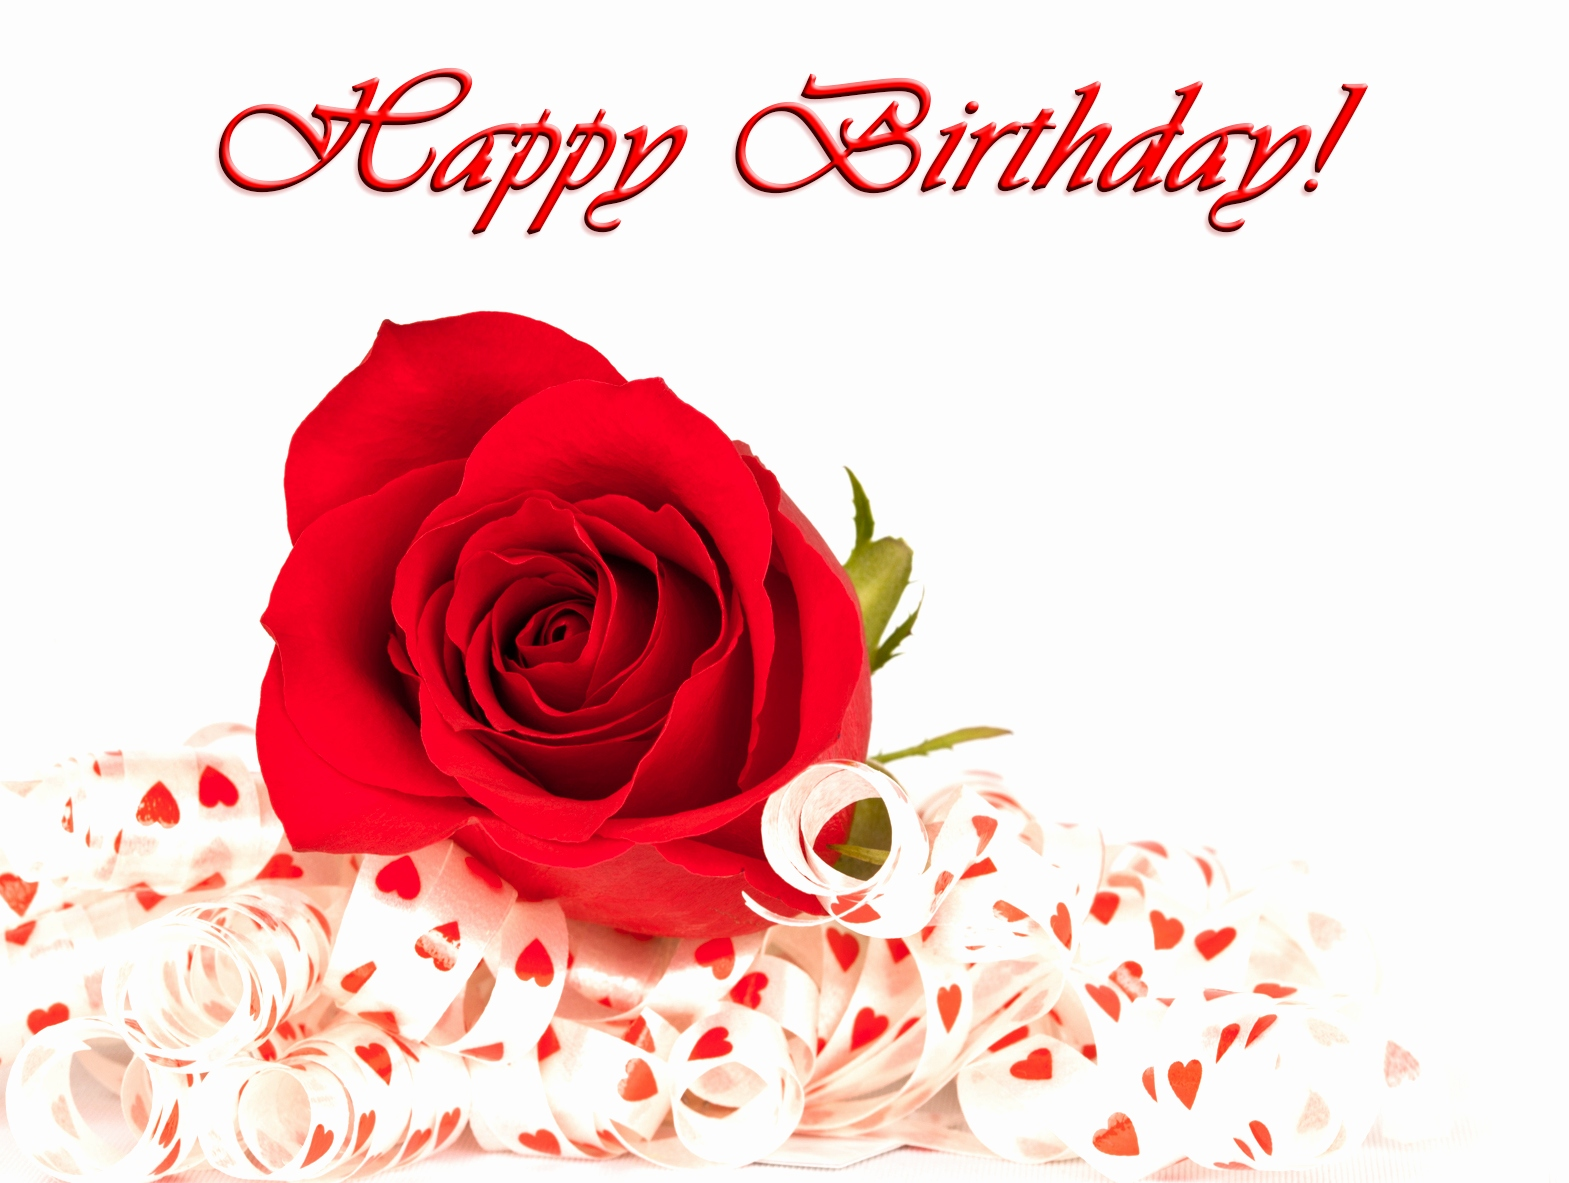 birthday wishes images ; happy-birthday-wishes-with-red-roses-awesome-happy-birthday-card-with-red-rose-of-happy-birthday-wishes-with-red-roses